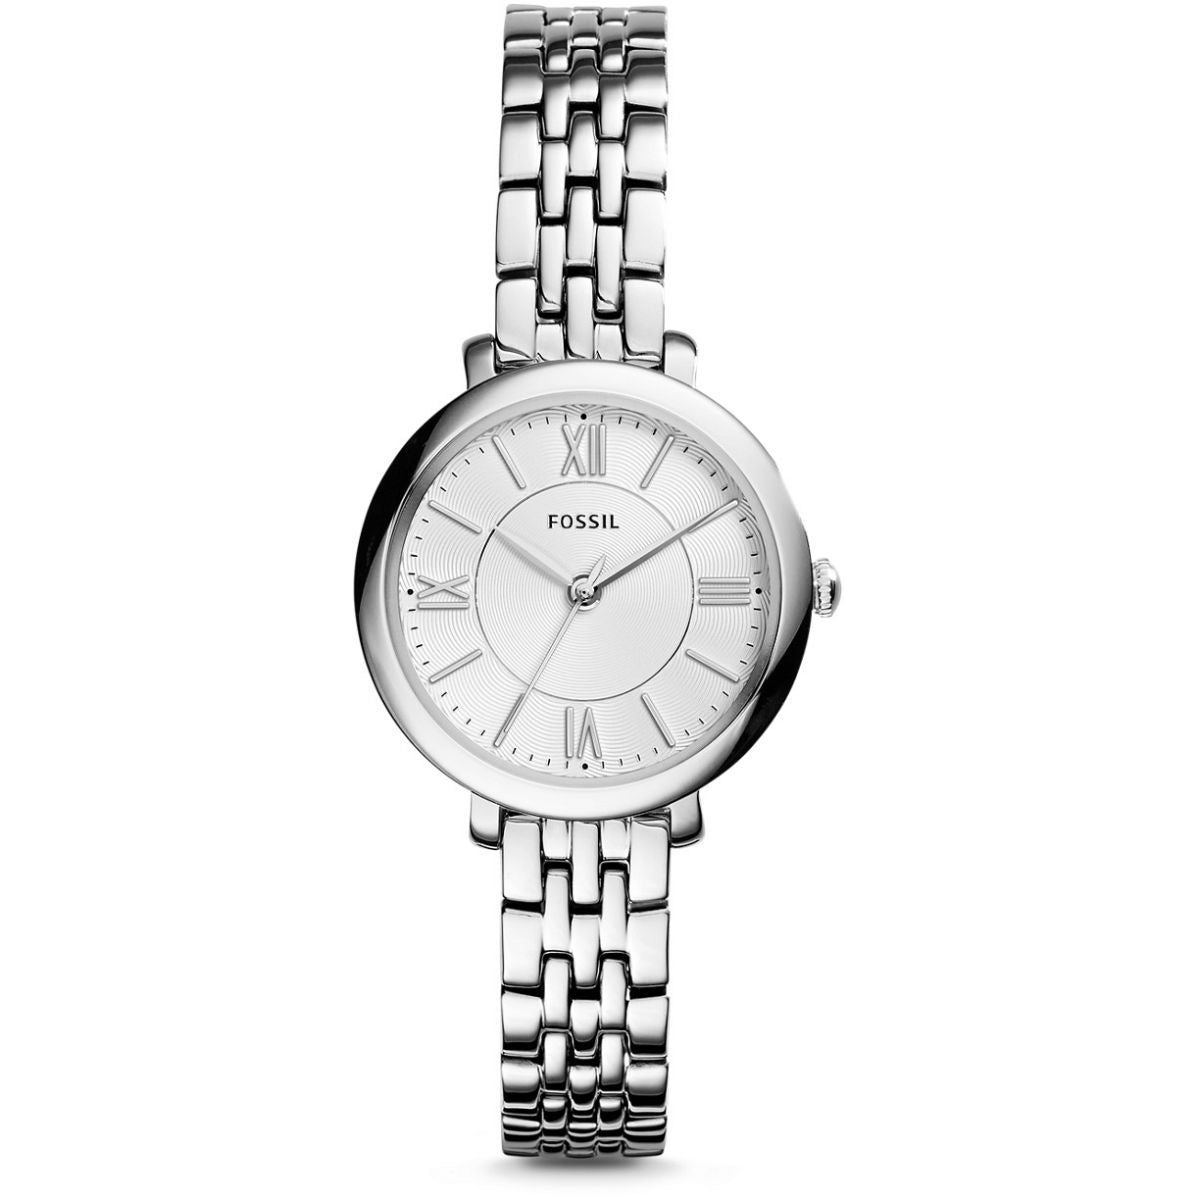 Fossil Women's Silver Dial Stainless Steel Band Watch - ES3797